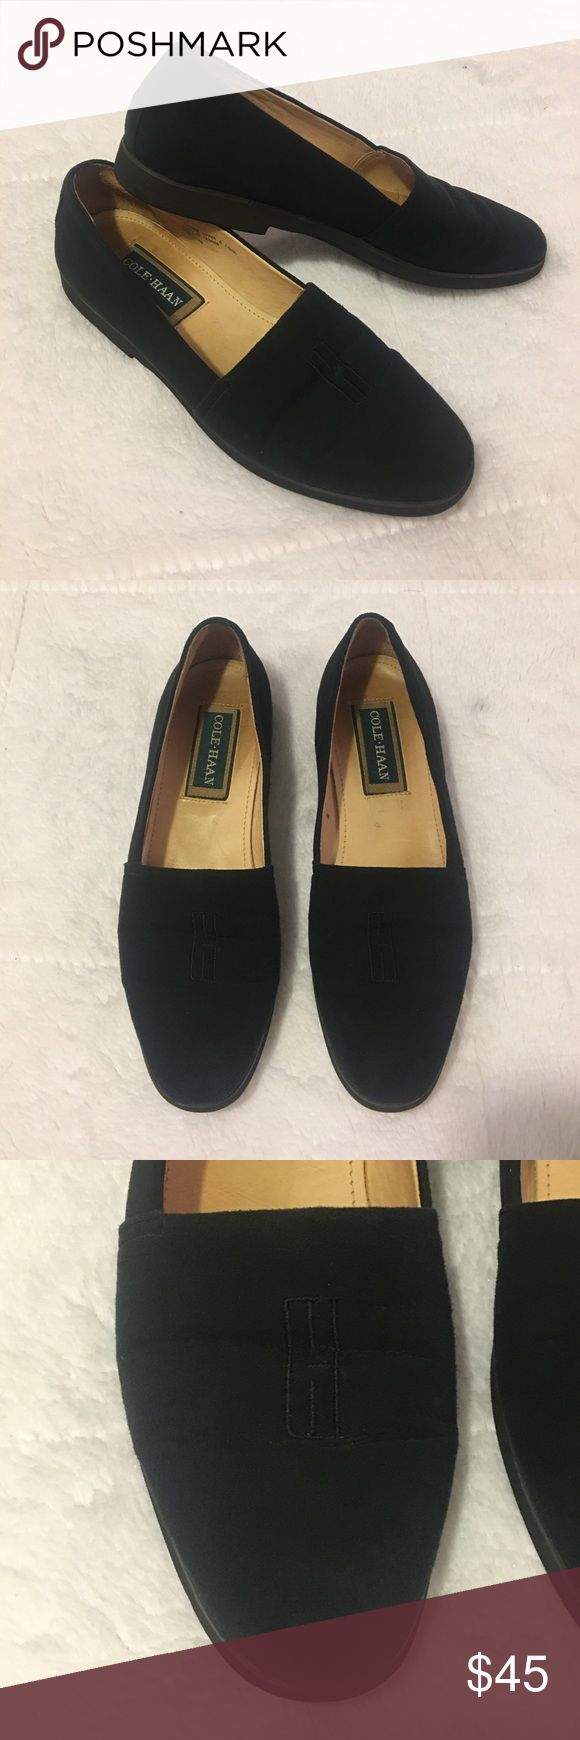 🔥SALE🔥 Cole Haan Slip On Flats Loafers Size 7N Cole Haan Black Slip On Flats. Women's Loafers Size 7N Shoes. Lightly Worn With Normal Wear And Tear(Creasing). Over All Great Pre Owned Condition. Cole Haan Shoes